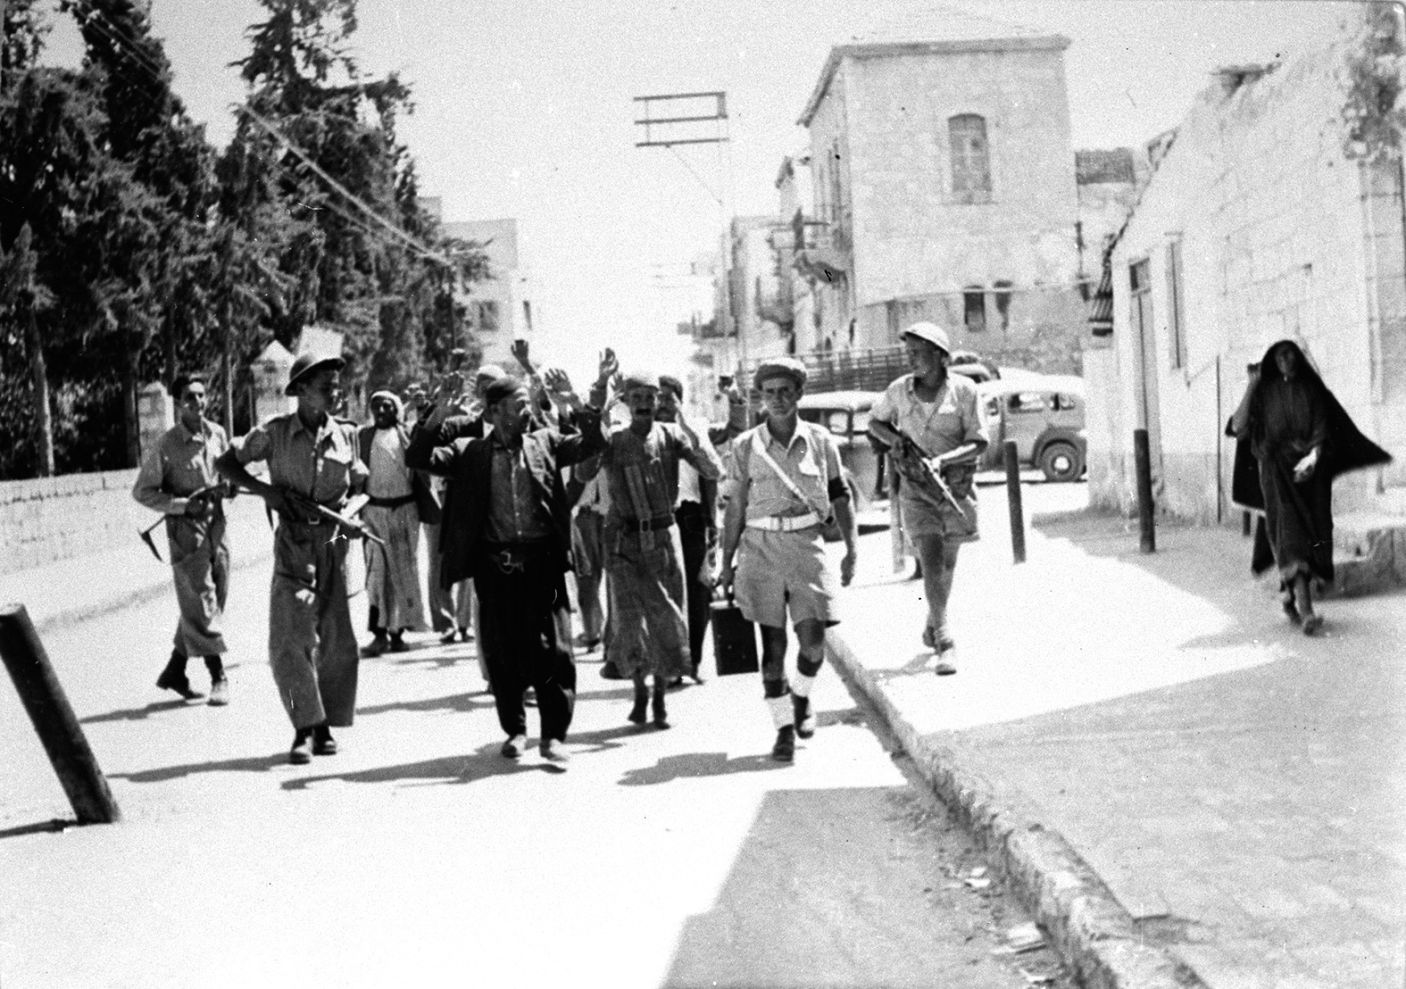 IDF soldiers guarding Palestinians in Ramle, in 1948. Collection of Benno Rothenberg/The IDF and Defense Establishment Archives